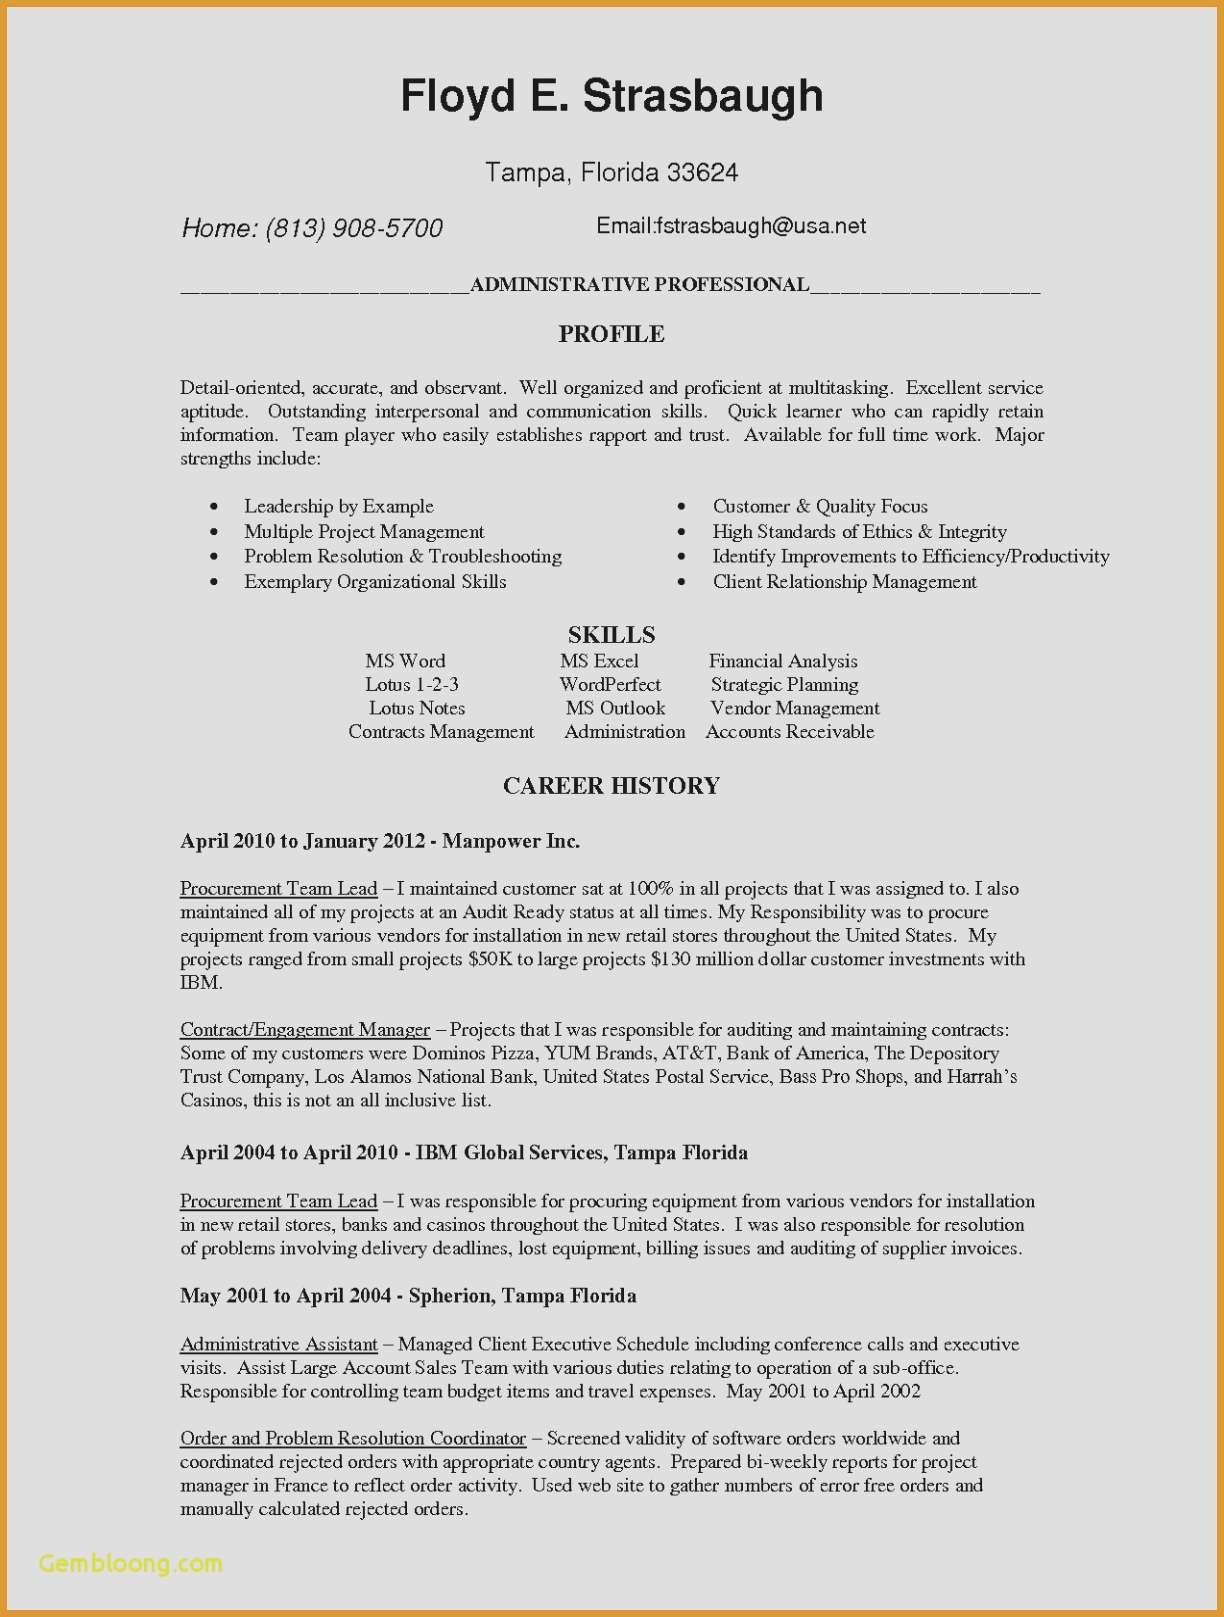 Employment History Resume - 19 New Executive Employment Agreement Land Of Template